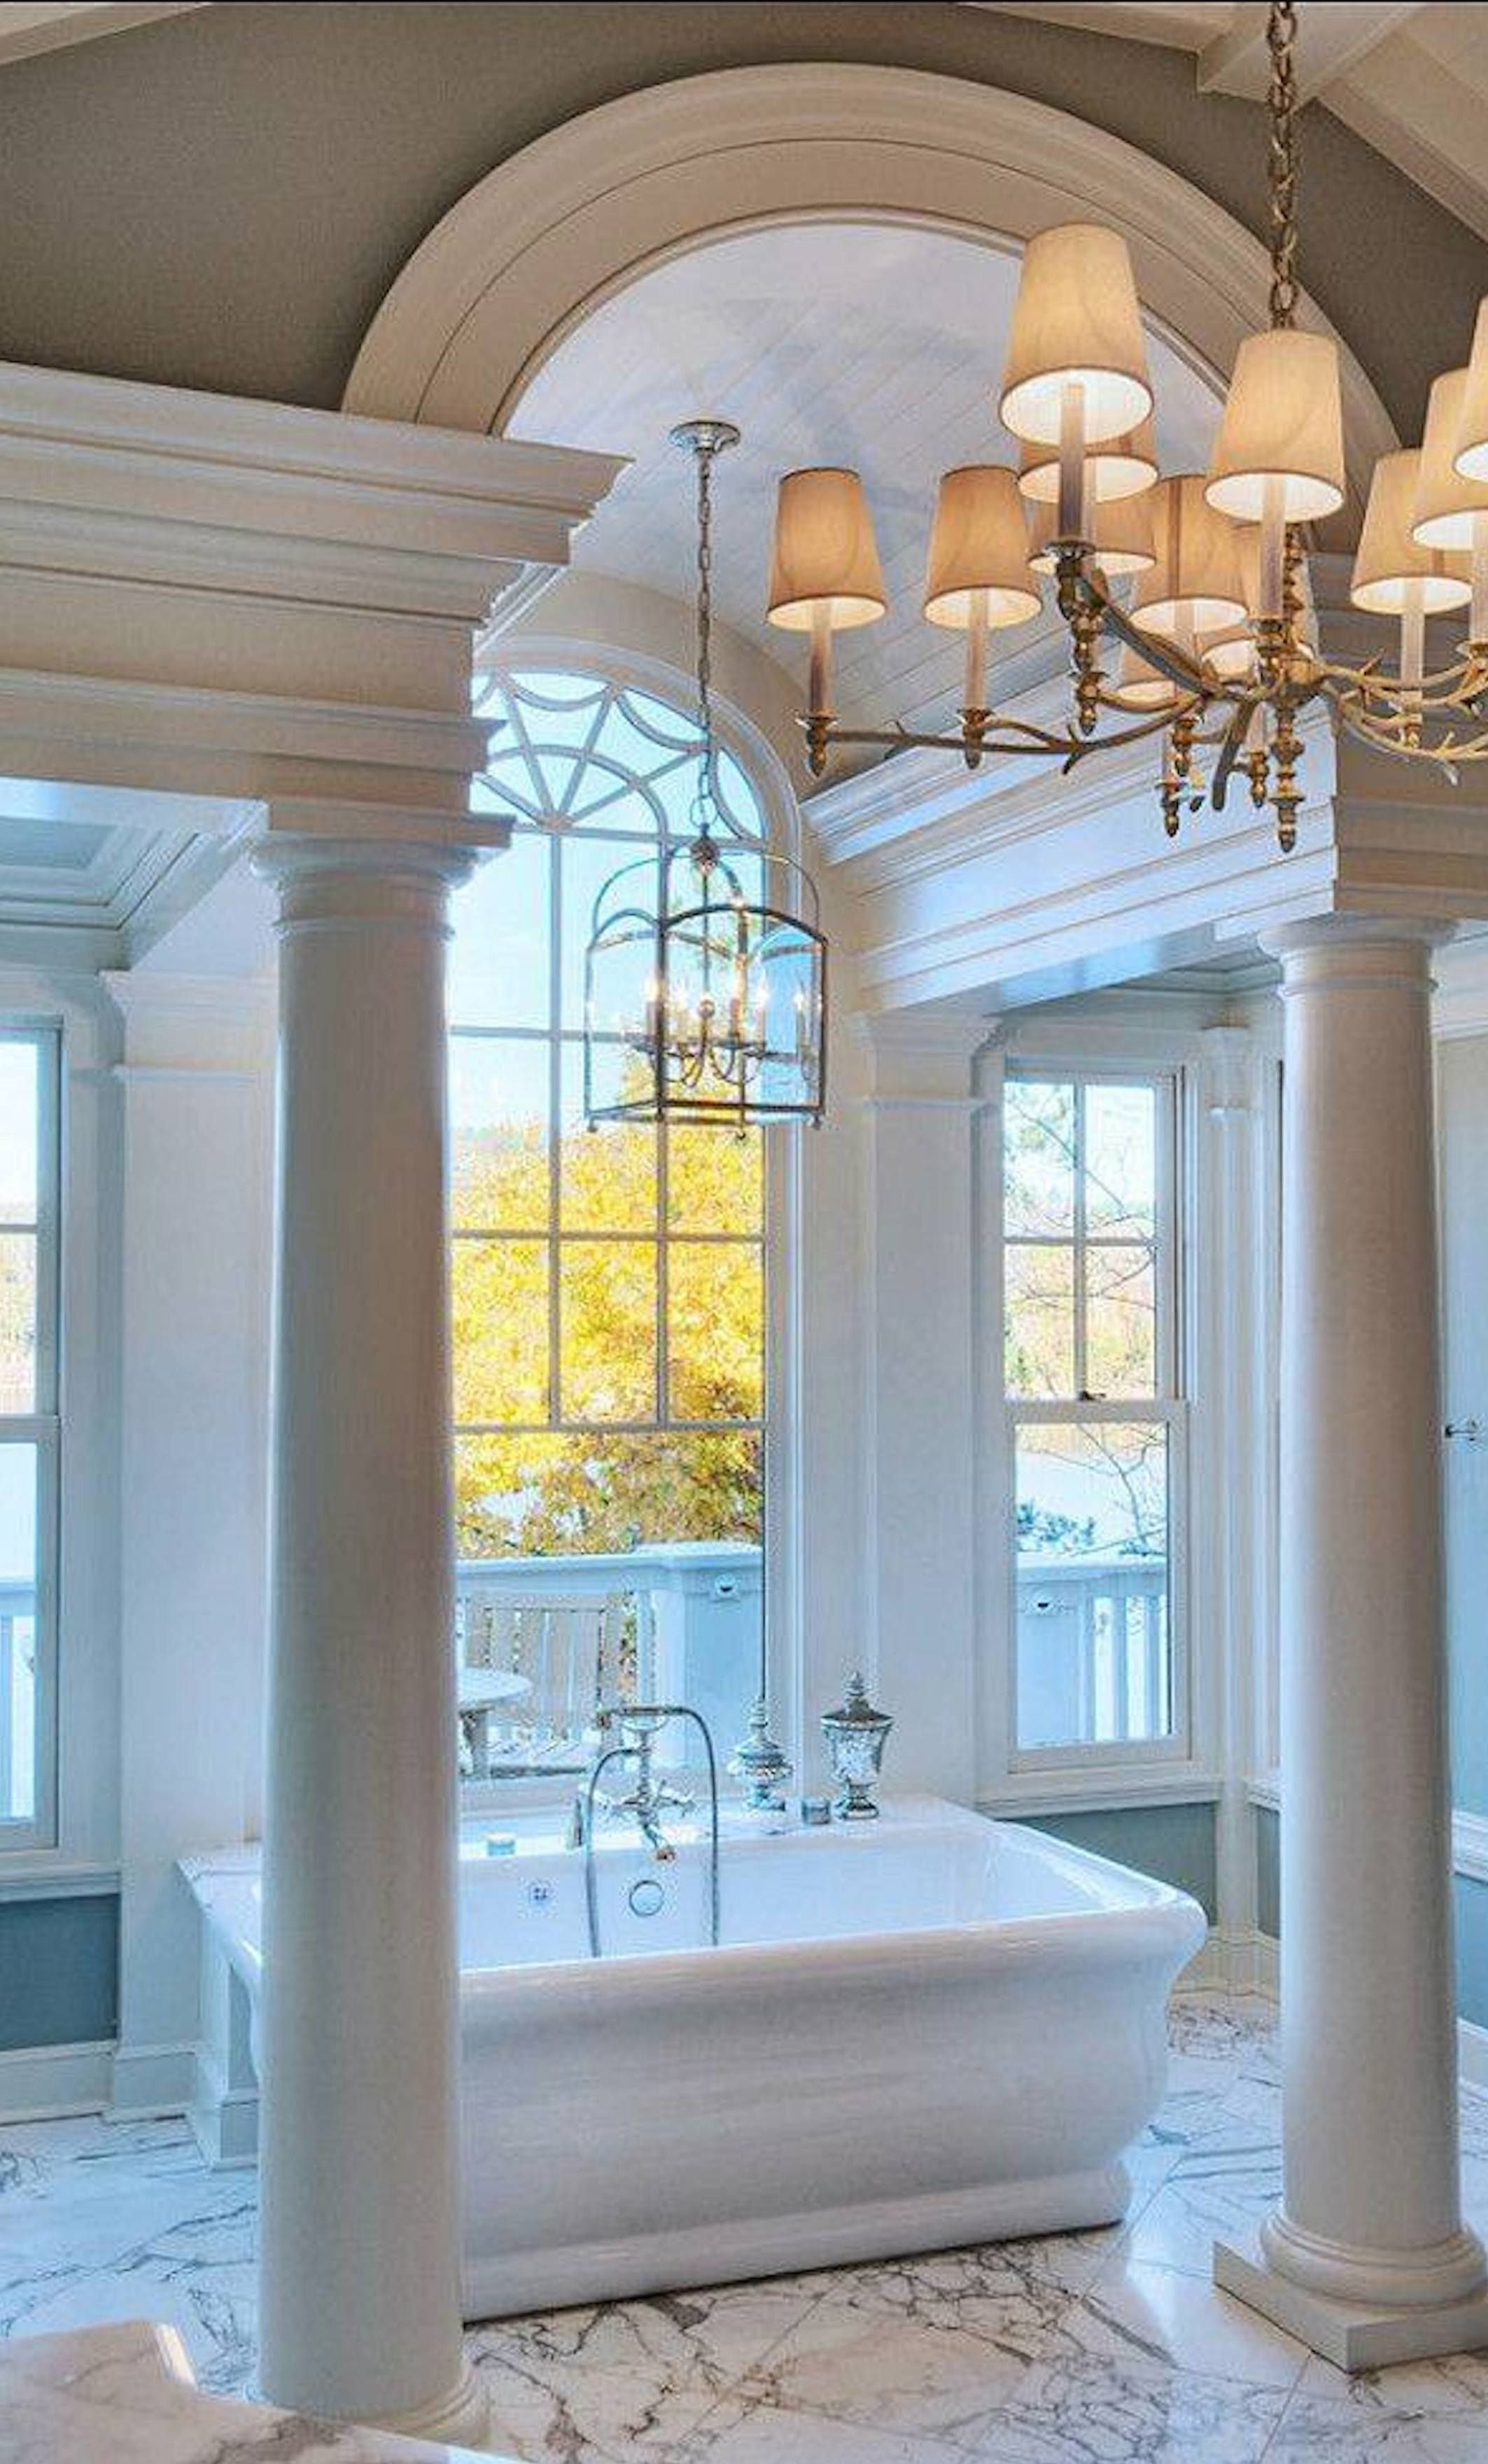 luxury bathroom | ║ ℬaʈhrσσʍຣ | Pinterest | Luxury, Bath and ...